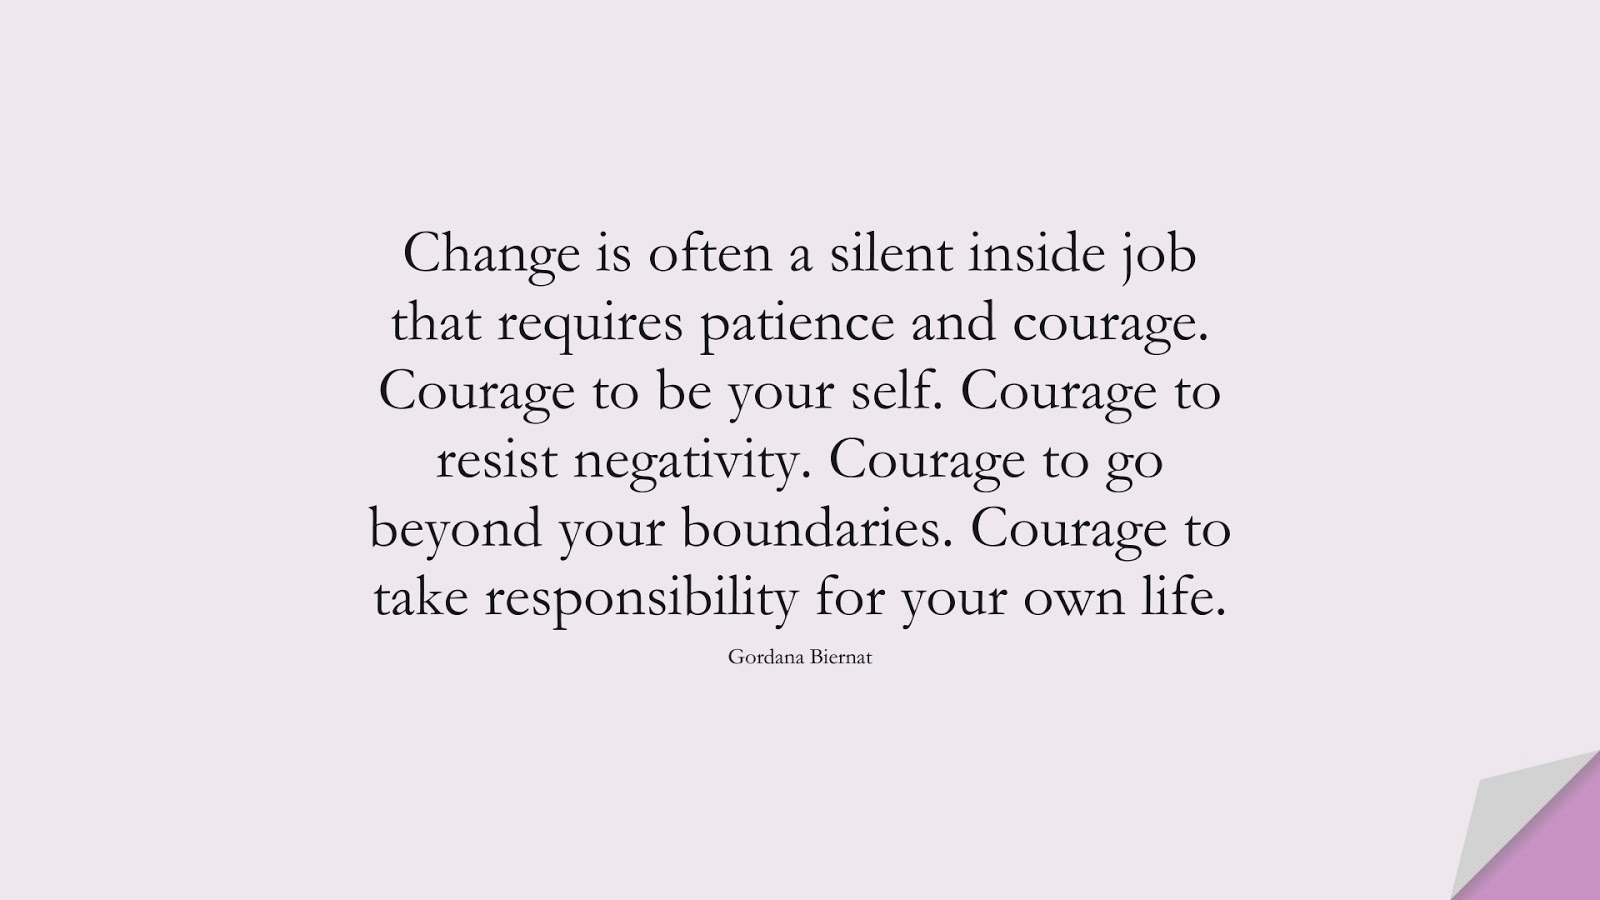 Change is often a silent inside job that requires patience and courage. Courage to be your self. Courage to resist negativity. Courage to go beyond your boundaries. Courage to take responsibility for your own life. (Gordana Biernat);  #CourageQuotes